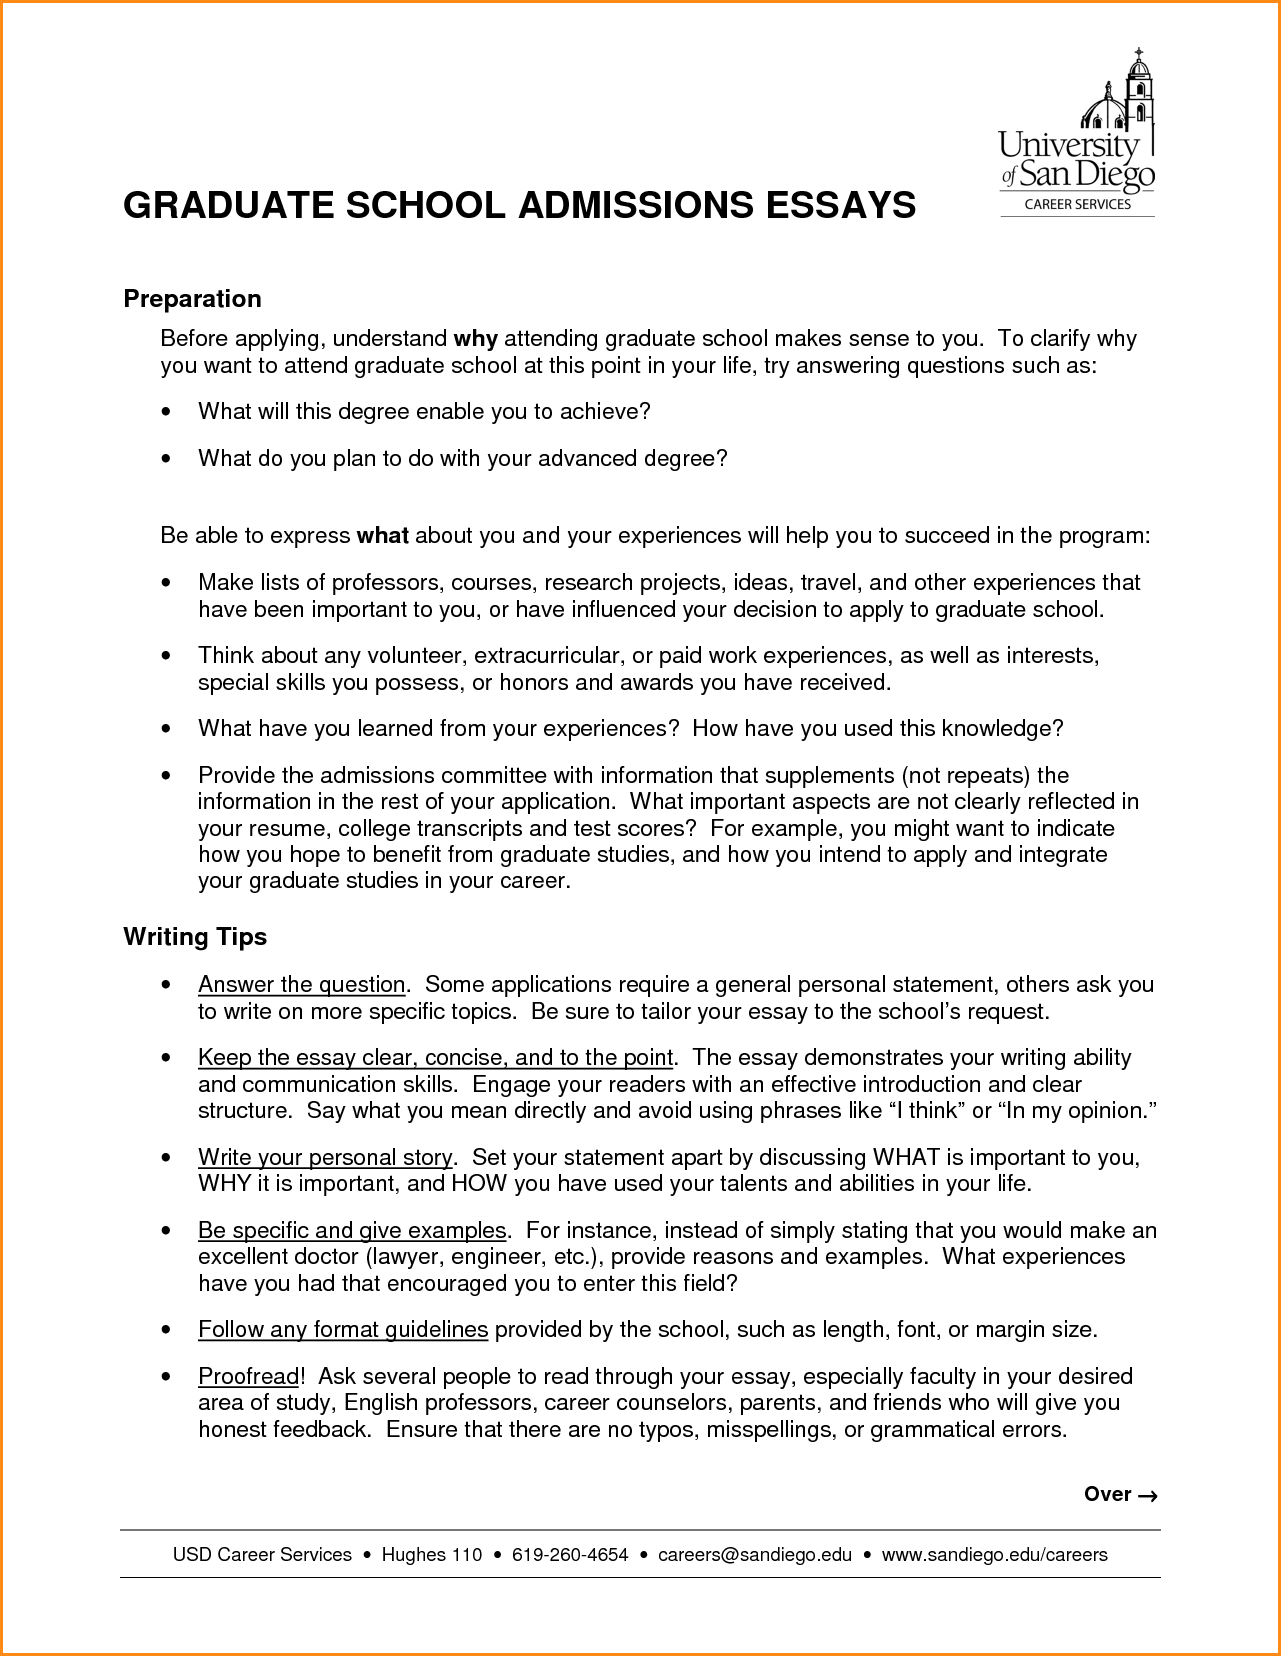 006 Graduation Essay Example High School Science Competitions For Students Pics Sample College Essays Applic International Competition Excellent Ideas Full